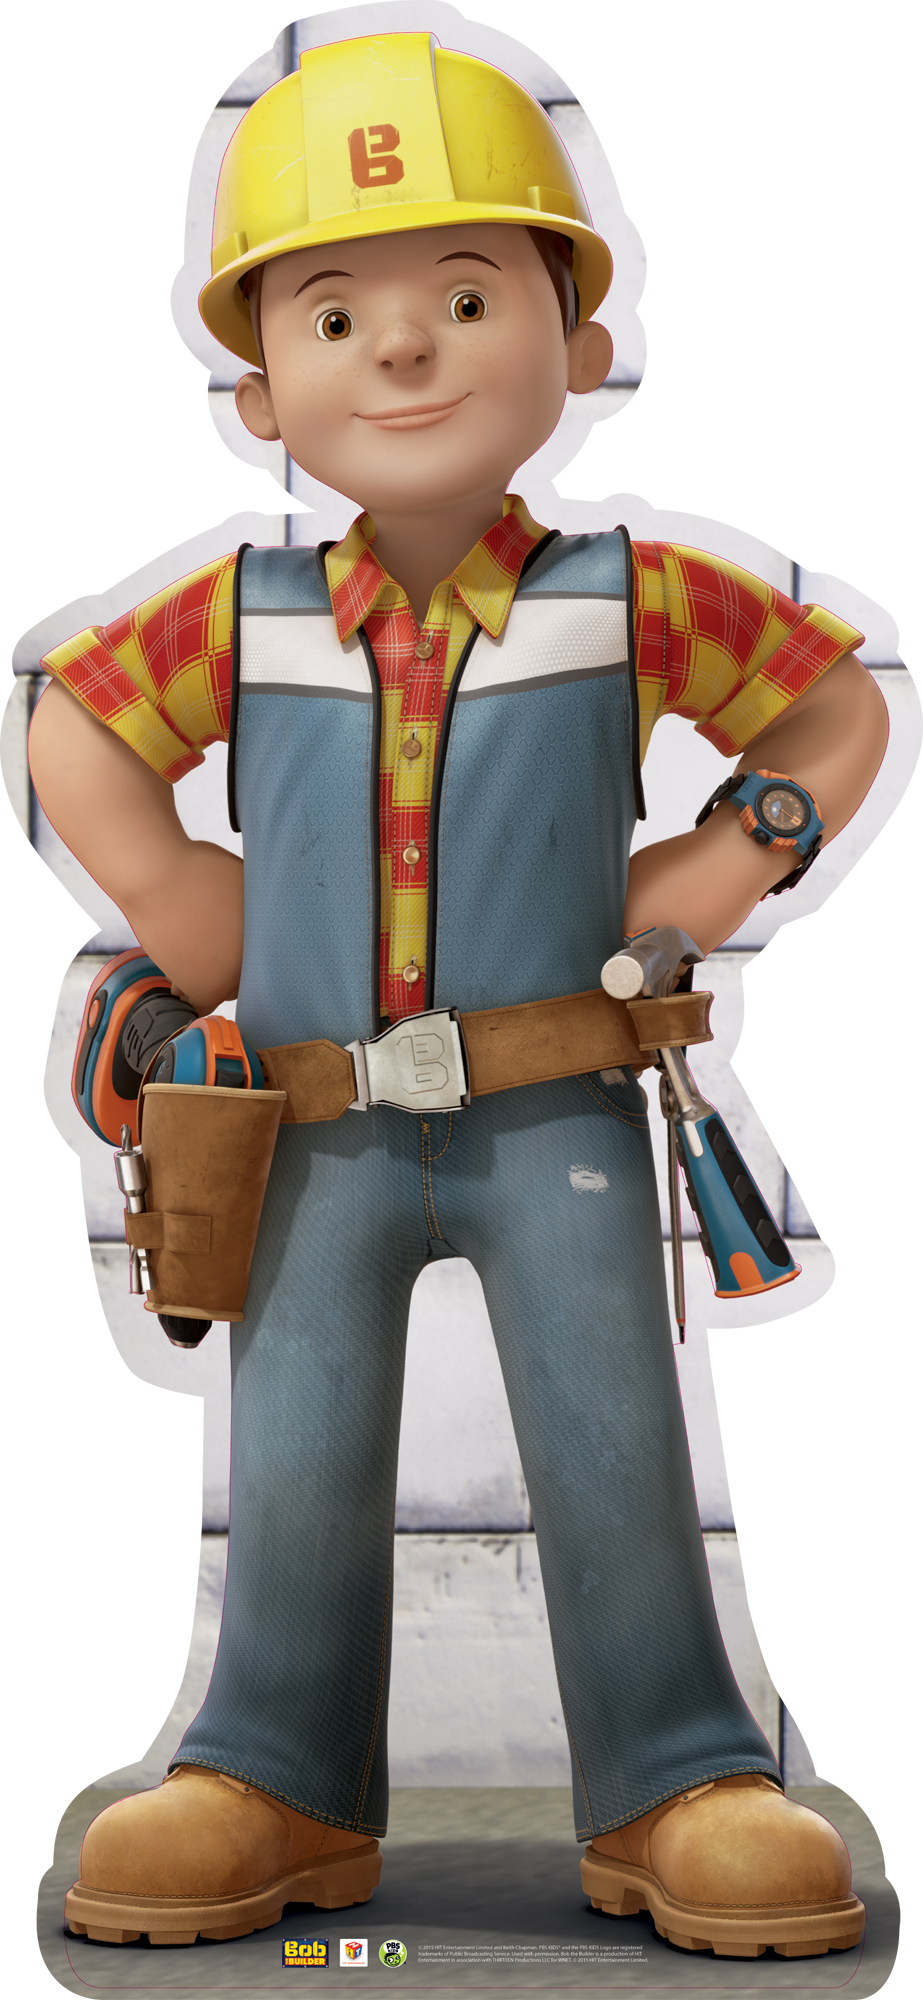 Bob the Builder Returns